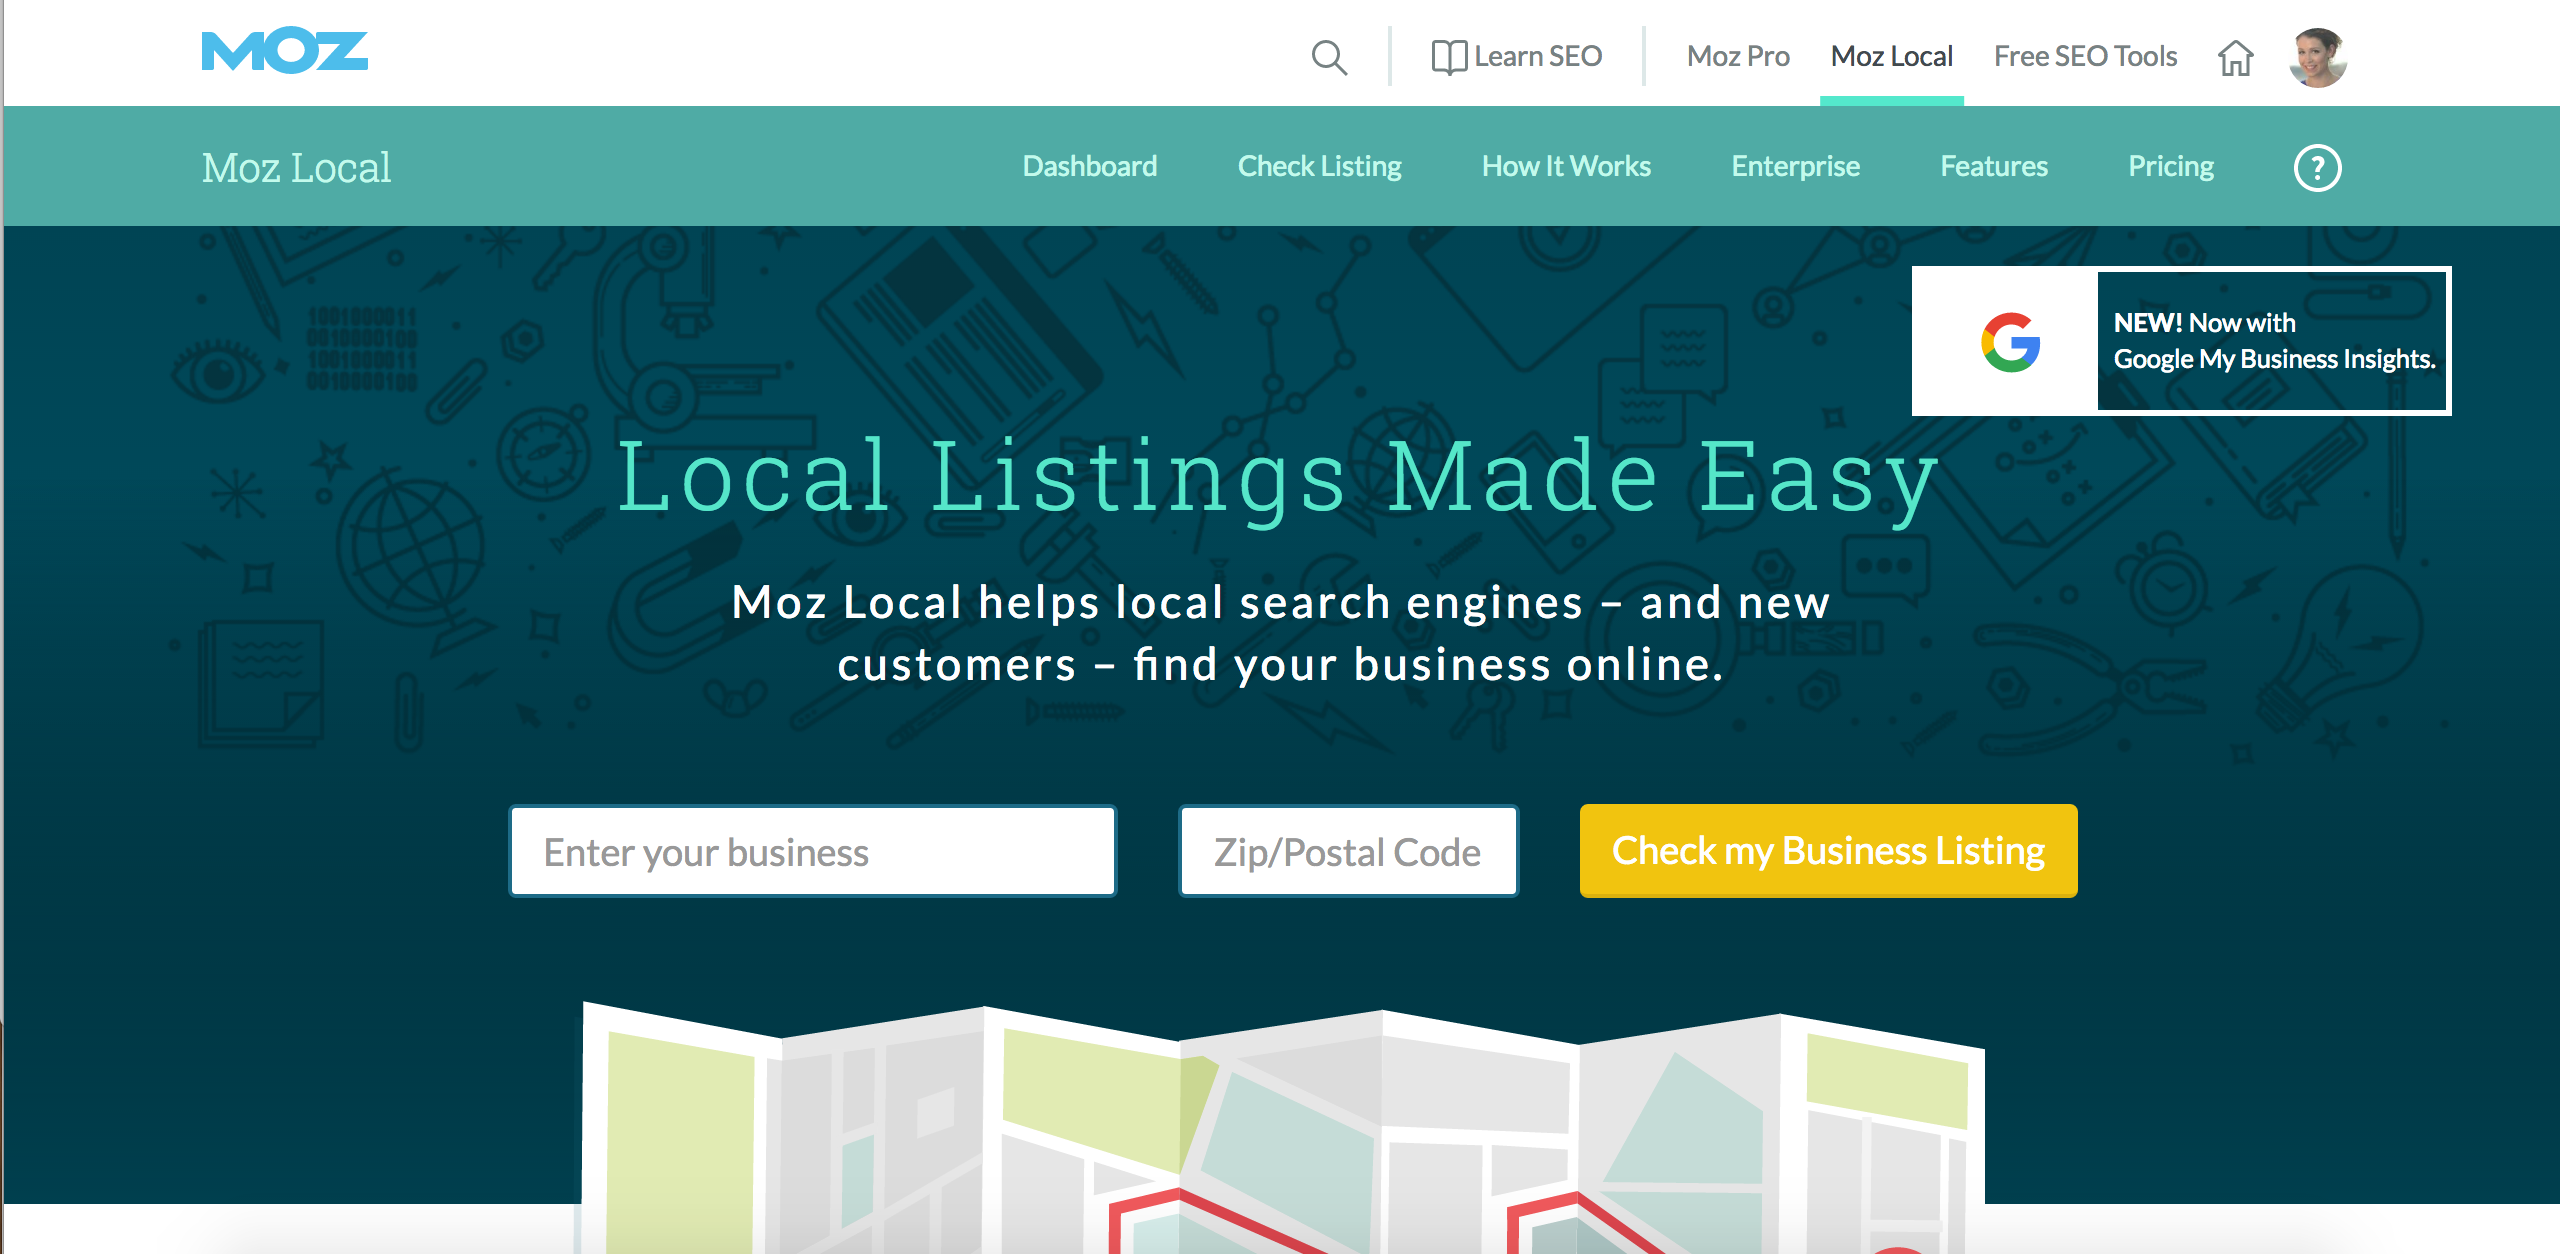 Moz's MozLocal product